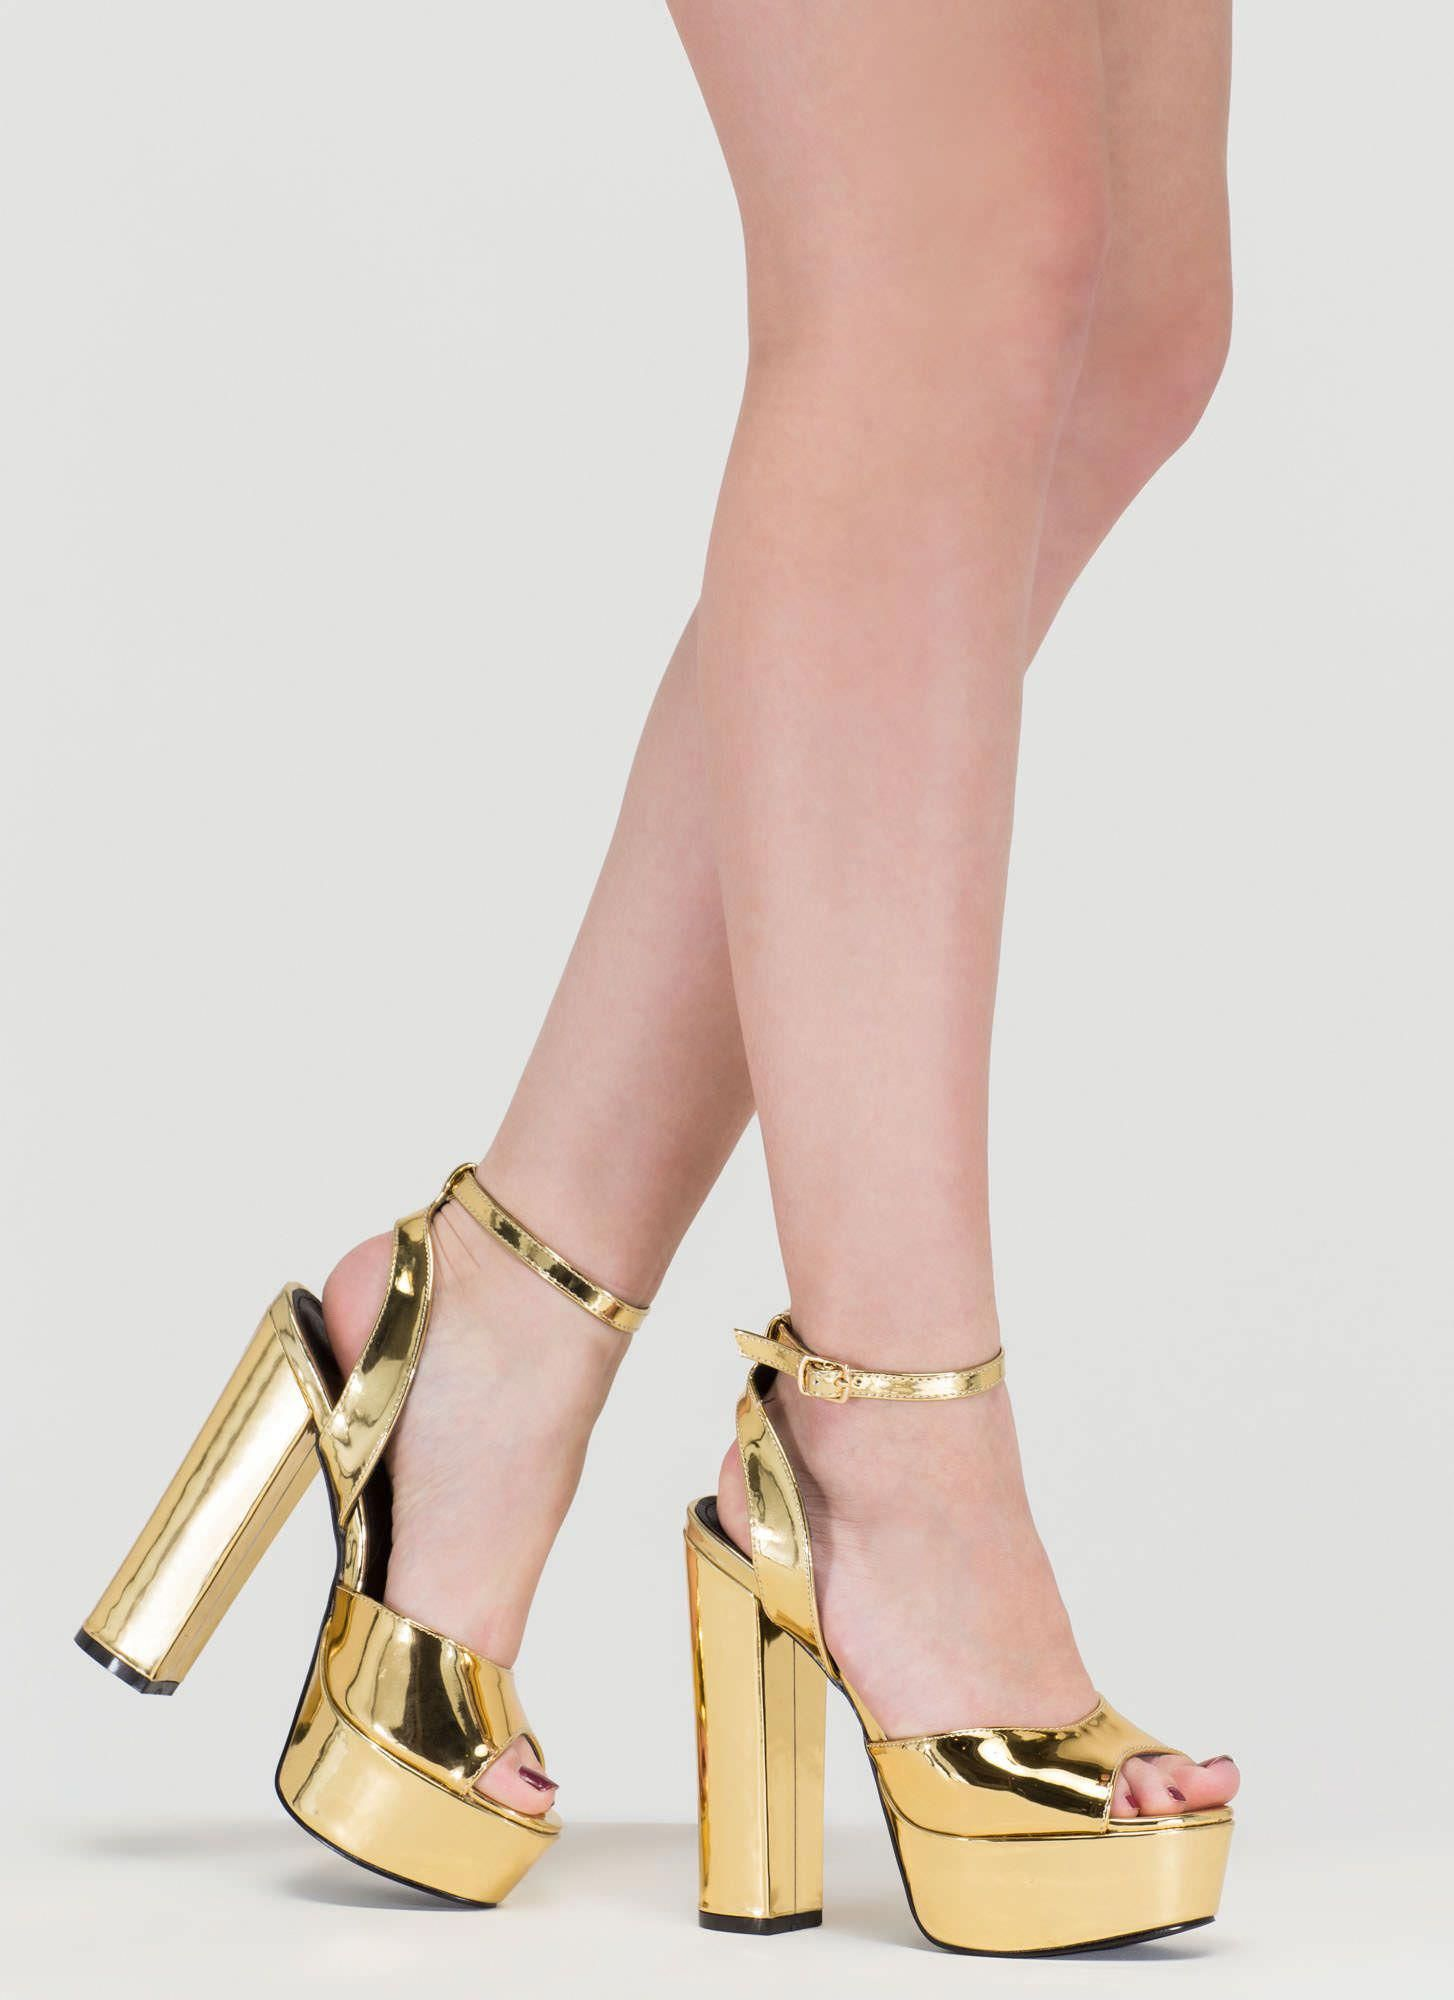 d34b9763a2d Channel your fave seventies bae in these chunky platform heels!  heels   platforms